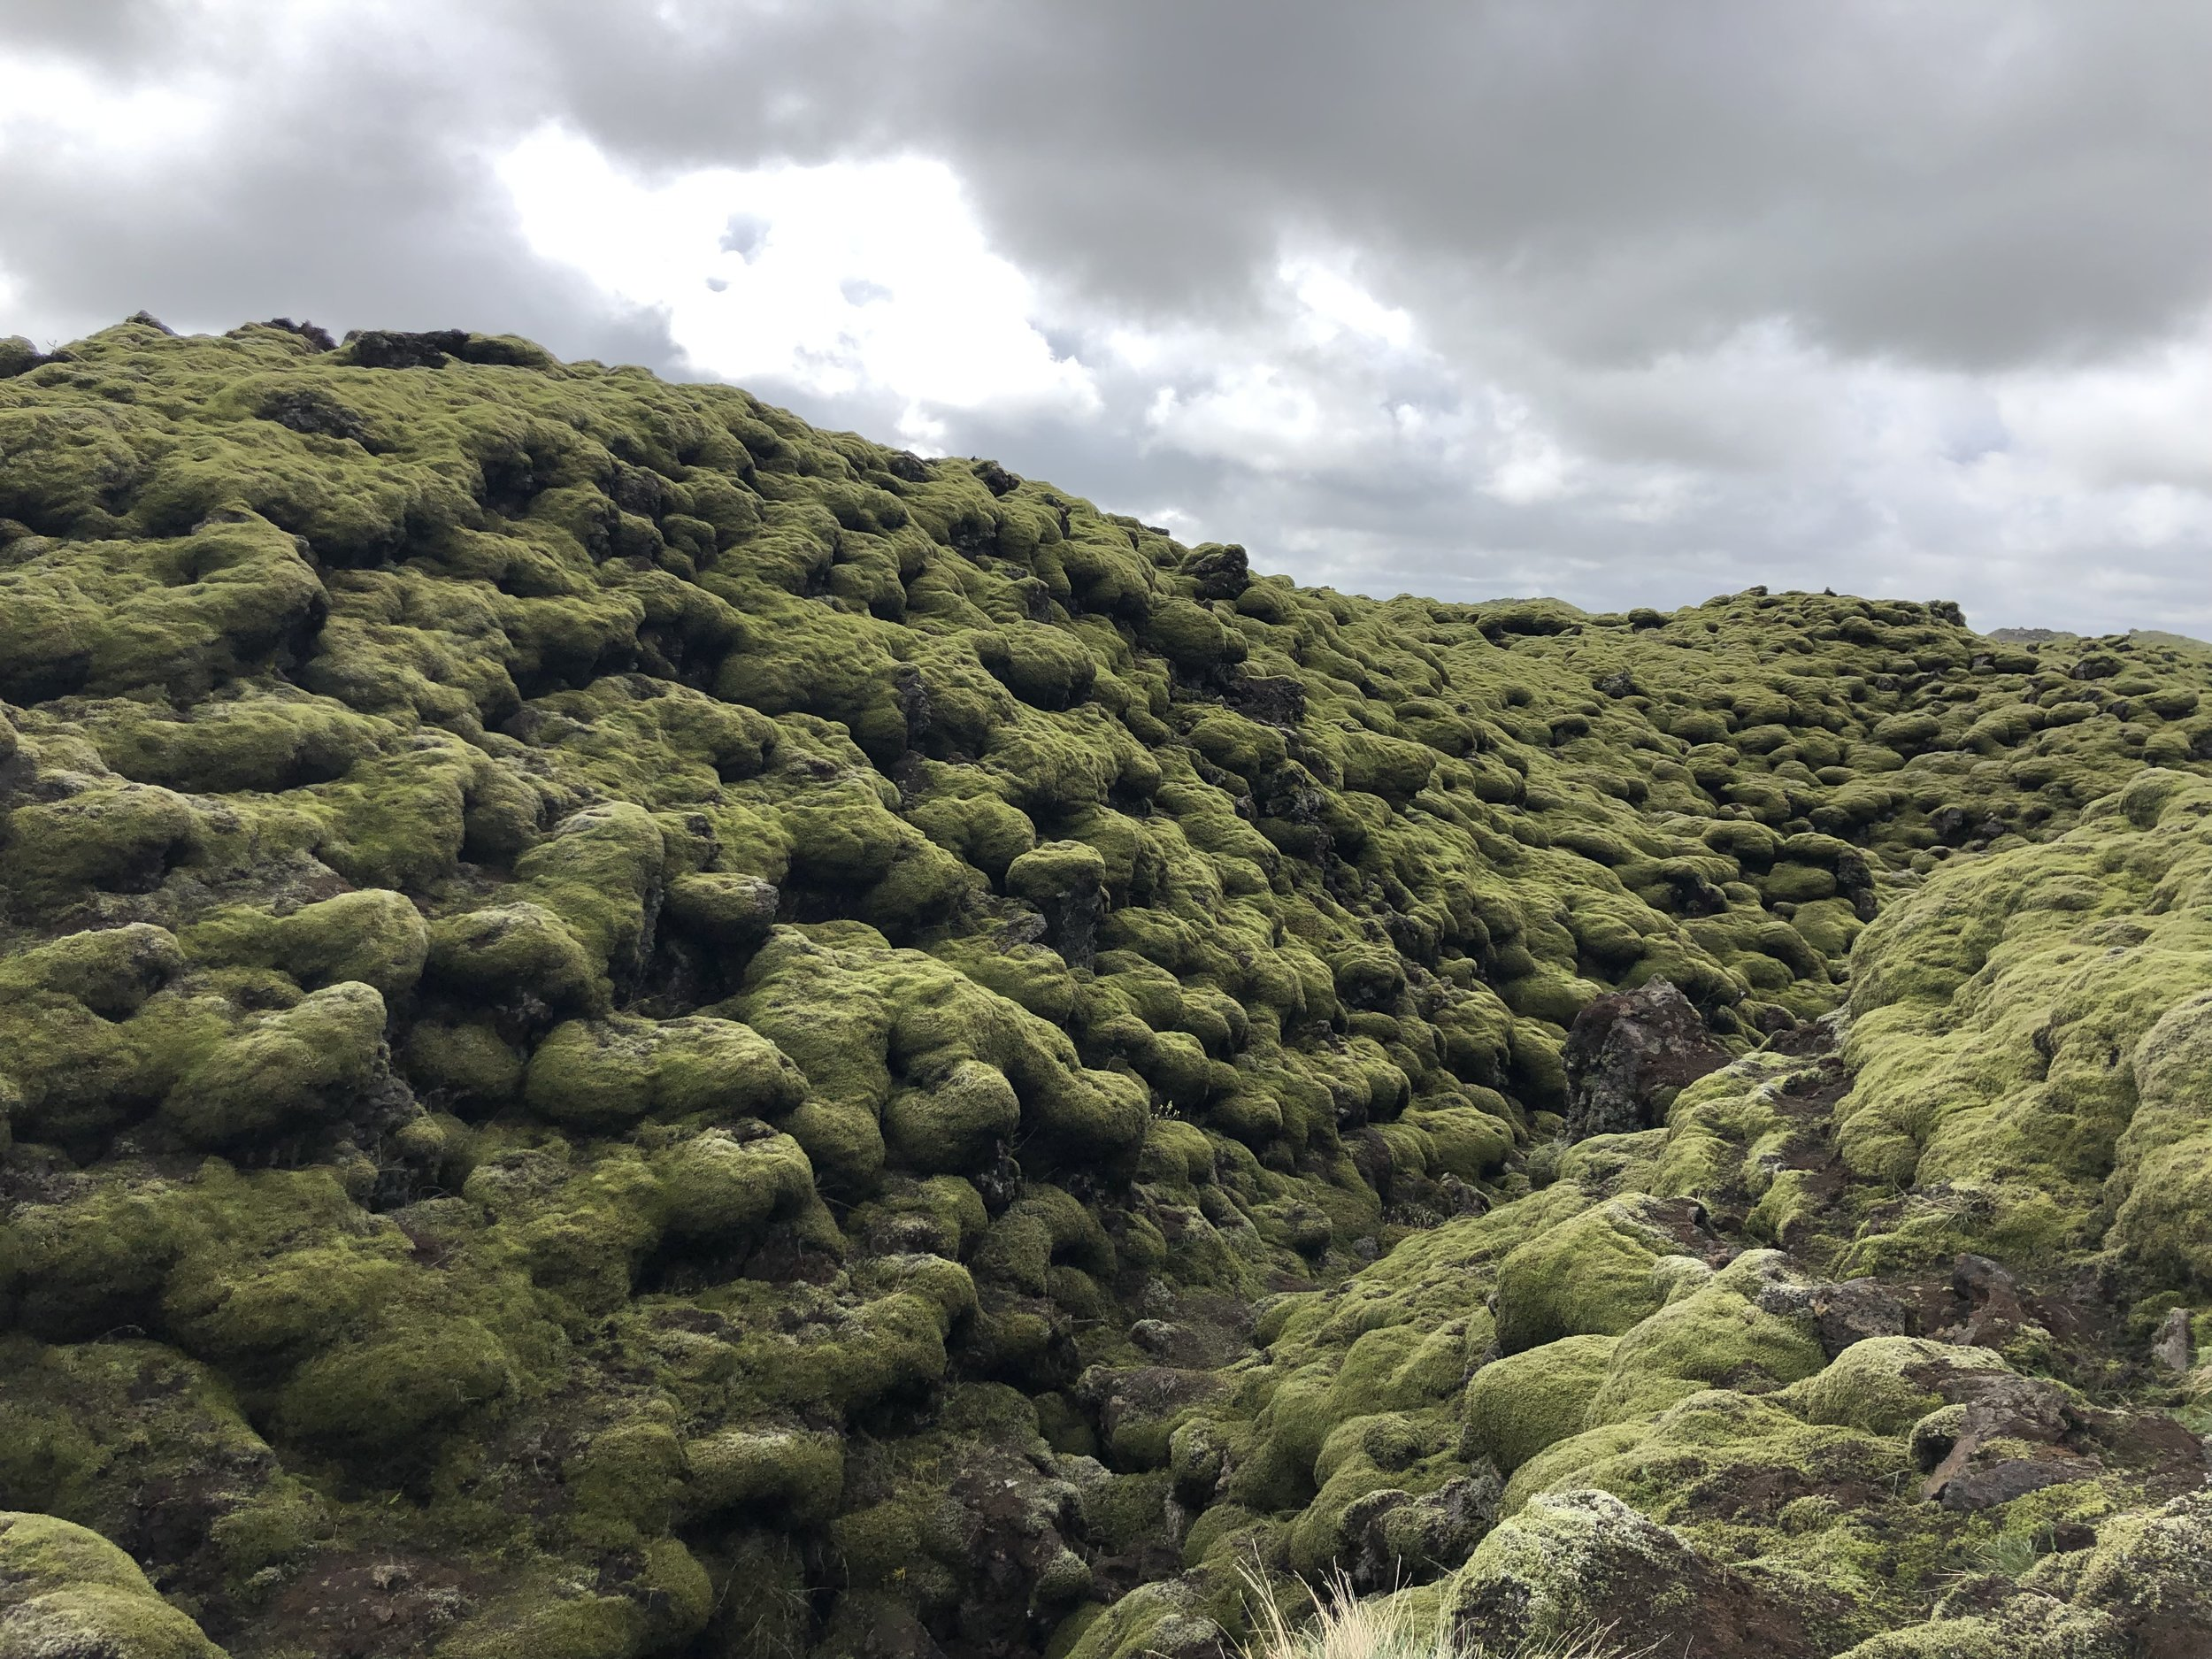 Moss covered lava.